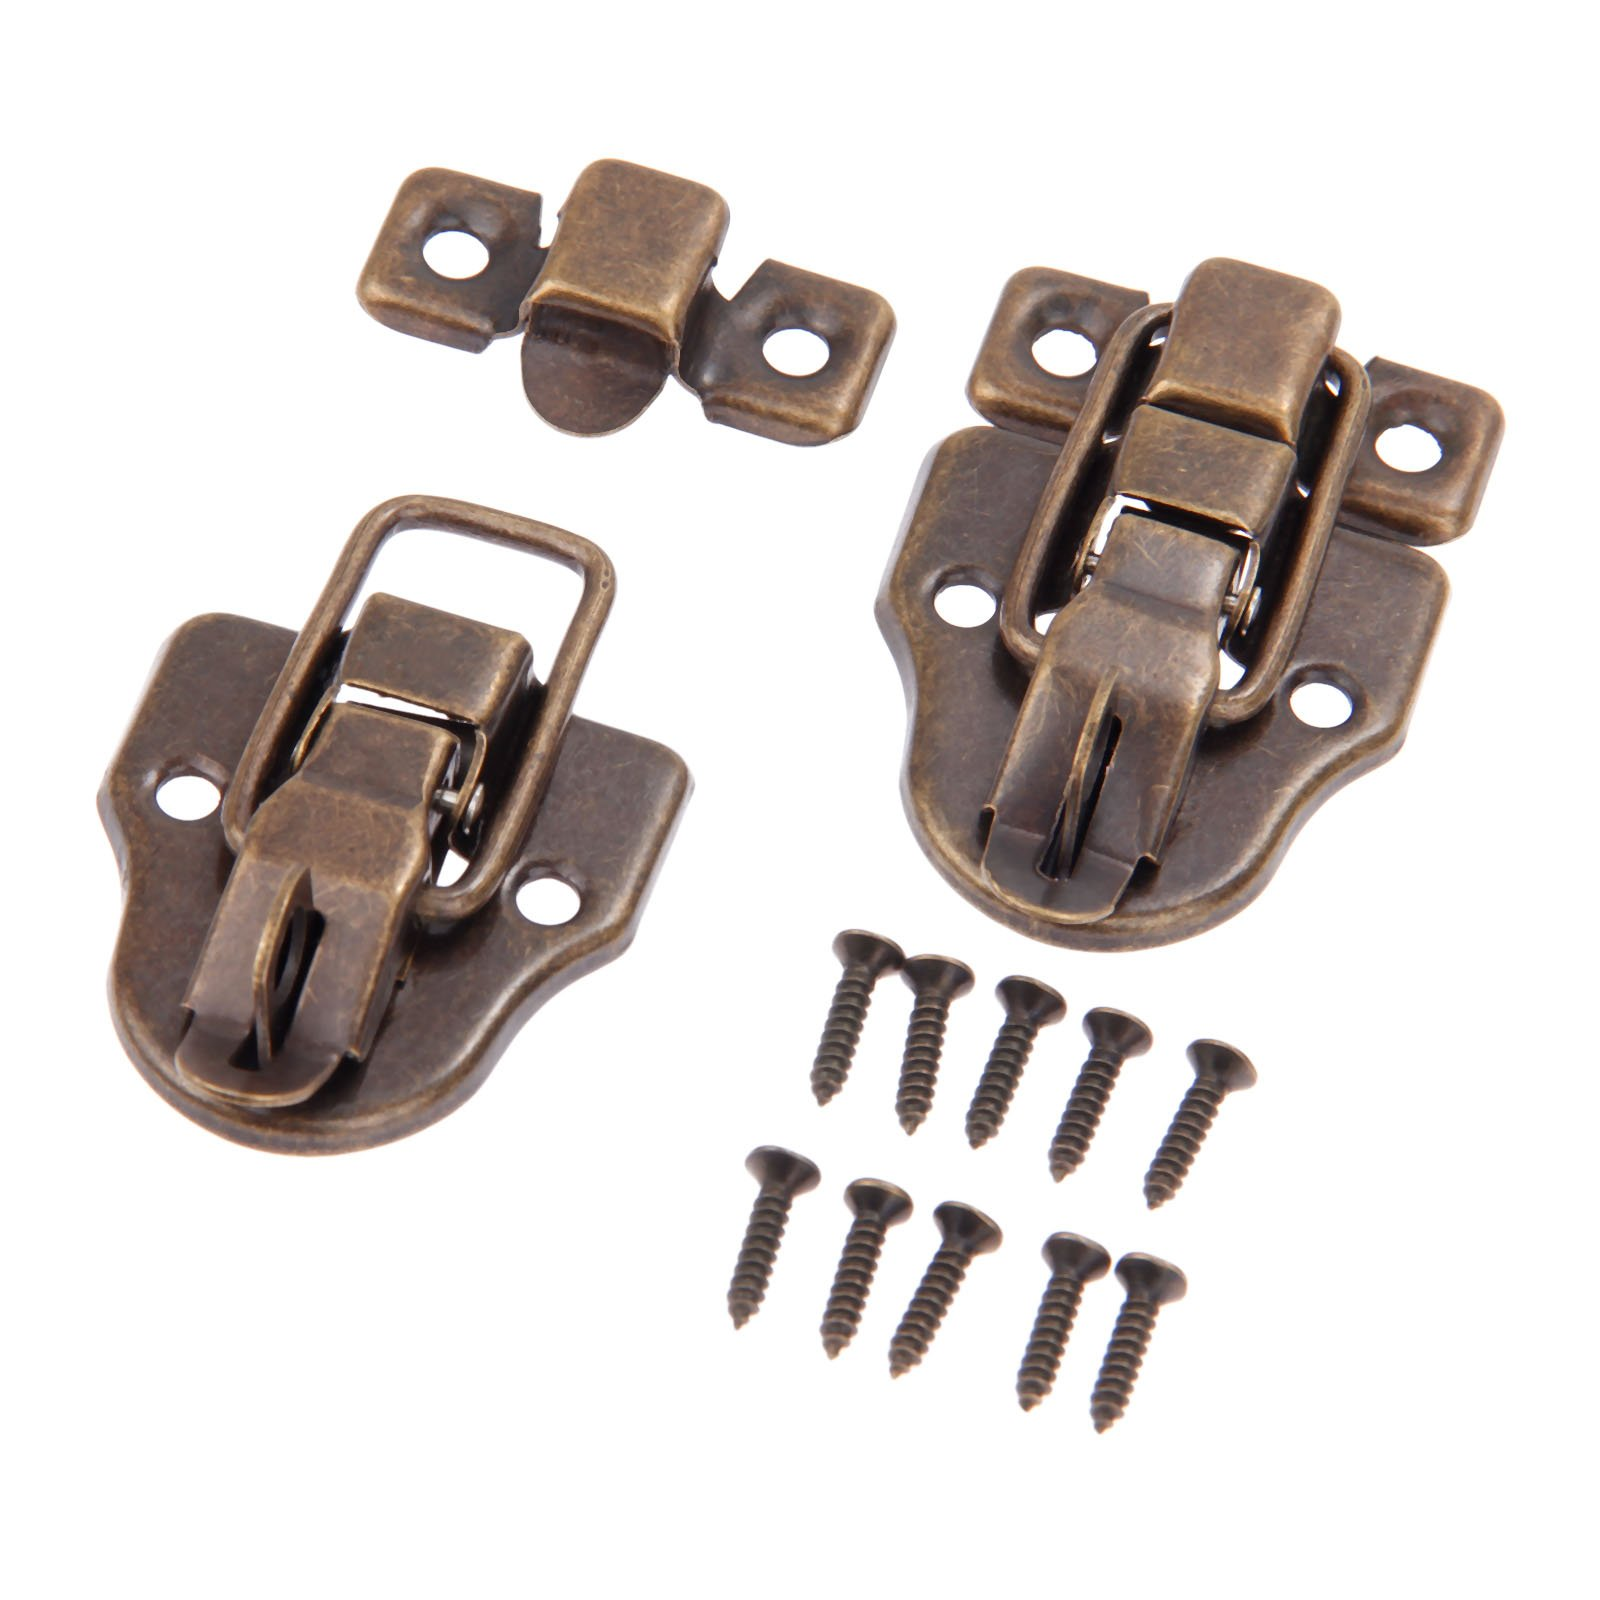 Dophee 10Pcs 2.32''x1.57'' Antique Bronze Retro Style Iron Toggle Fit Case Box Chest Trunk Latch Hasps by dophee (Image #3)